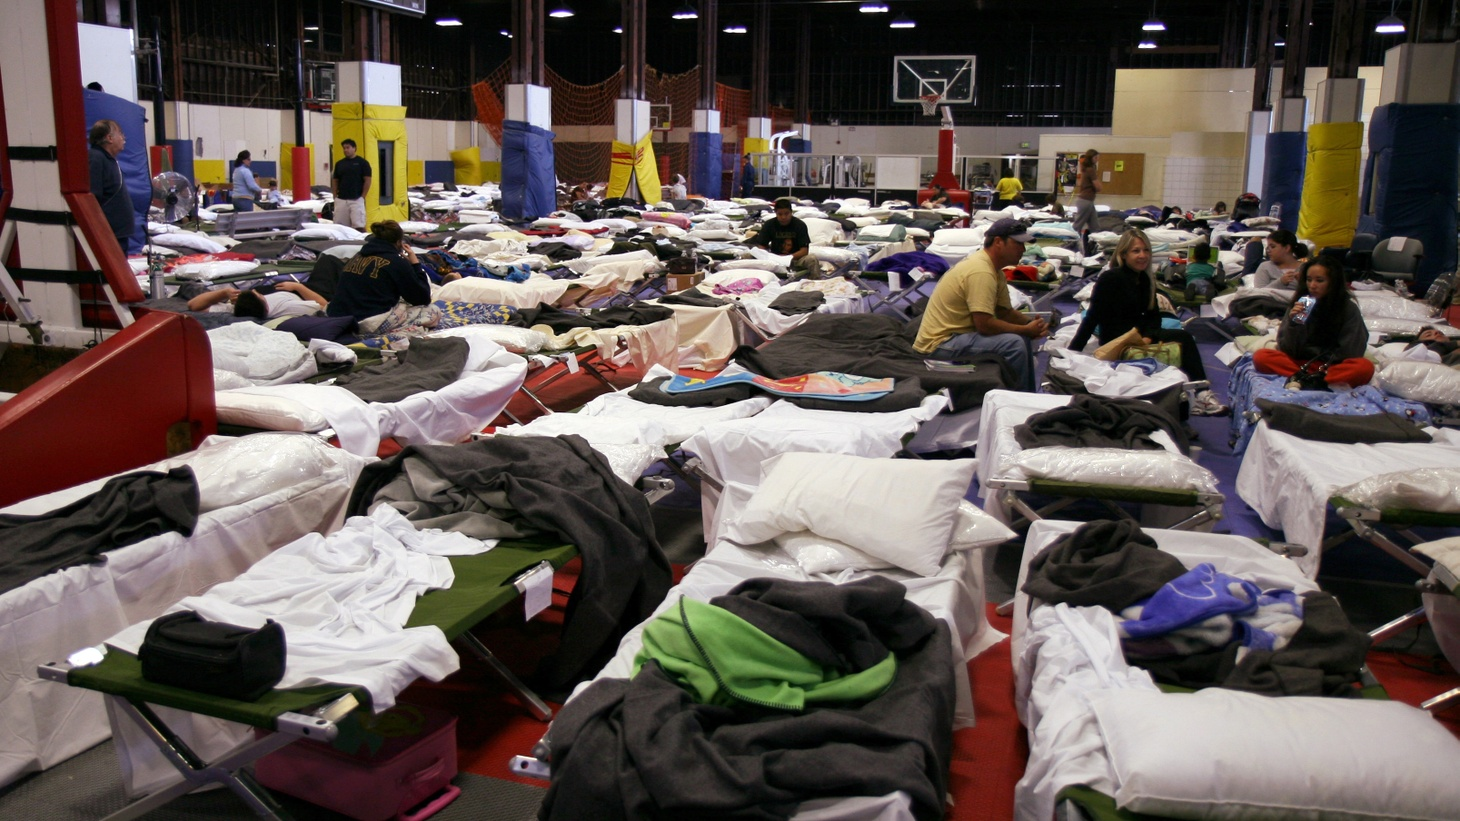 Resources to help the tens of thousands of Camp Fire evacuees are strapped.